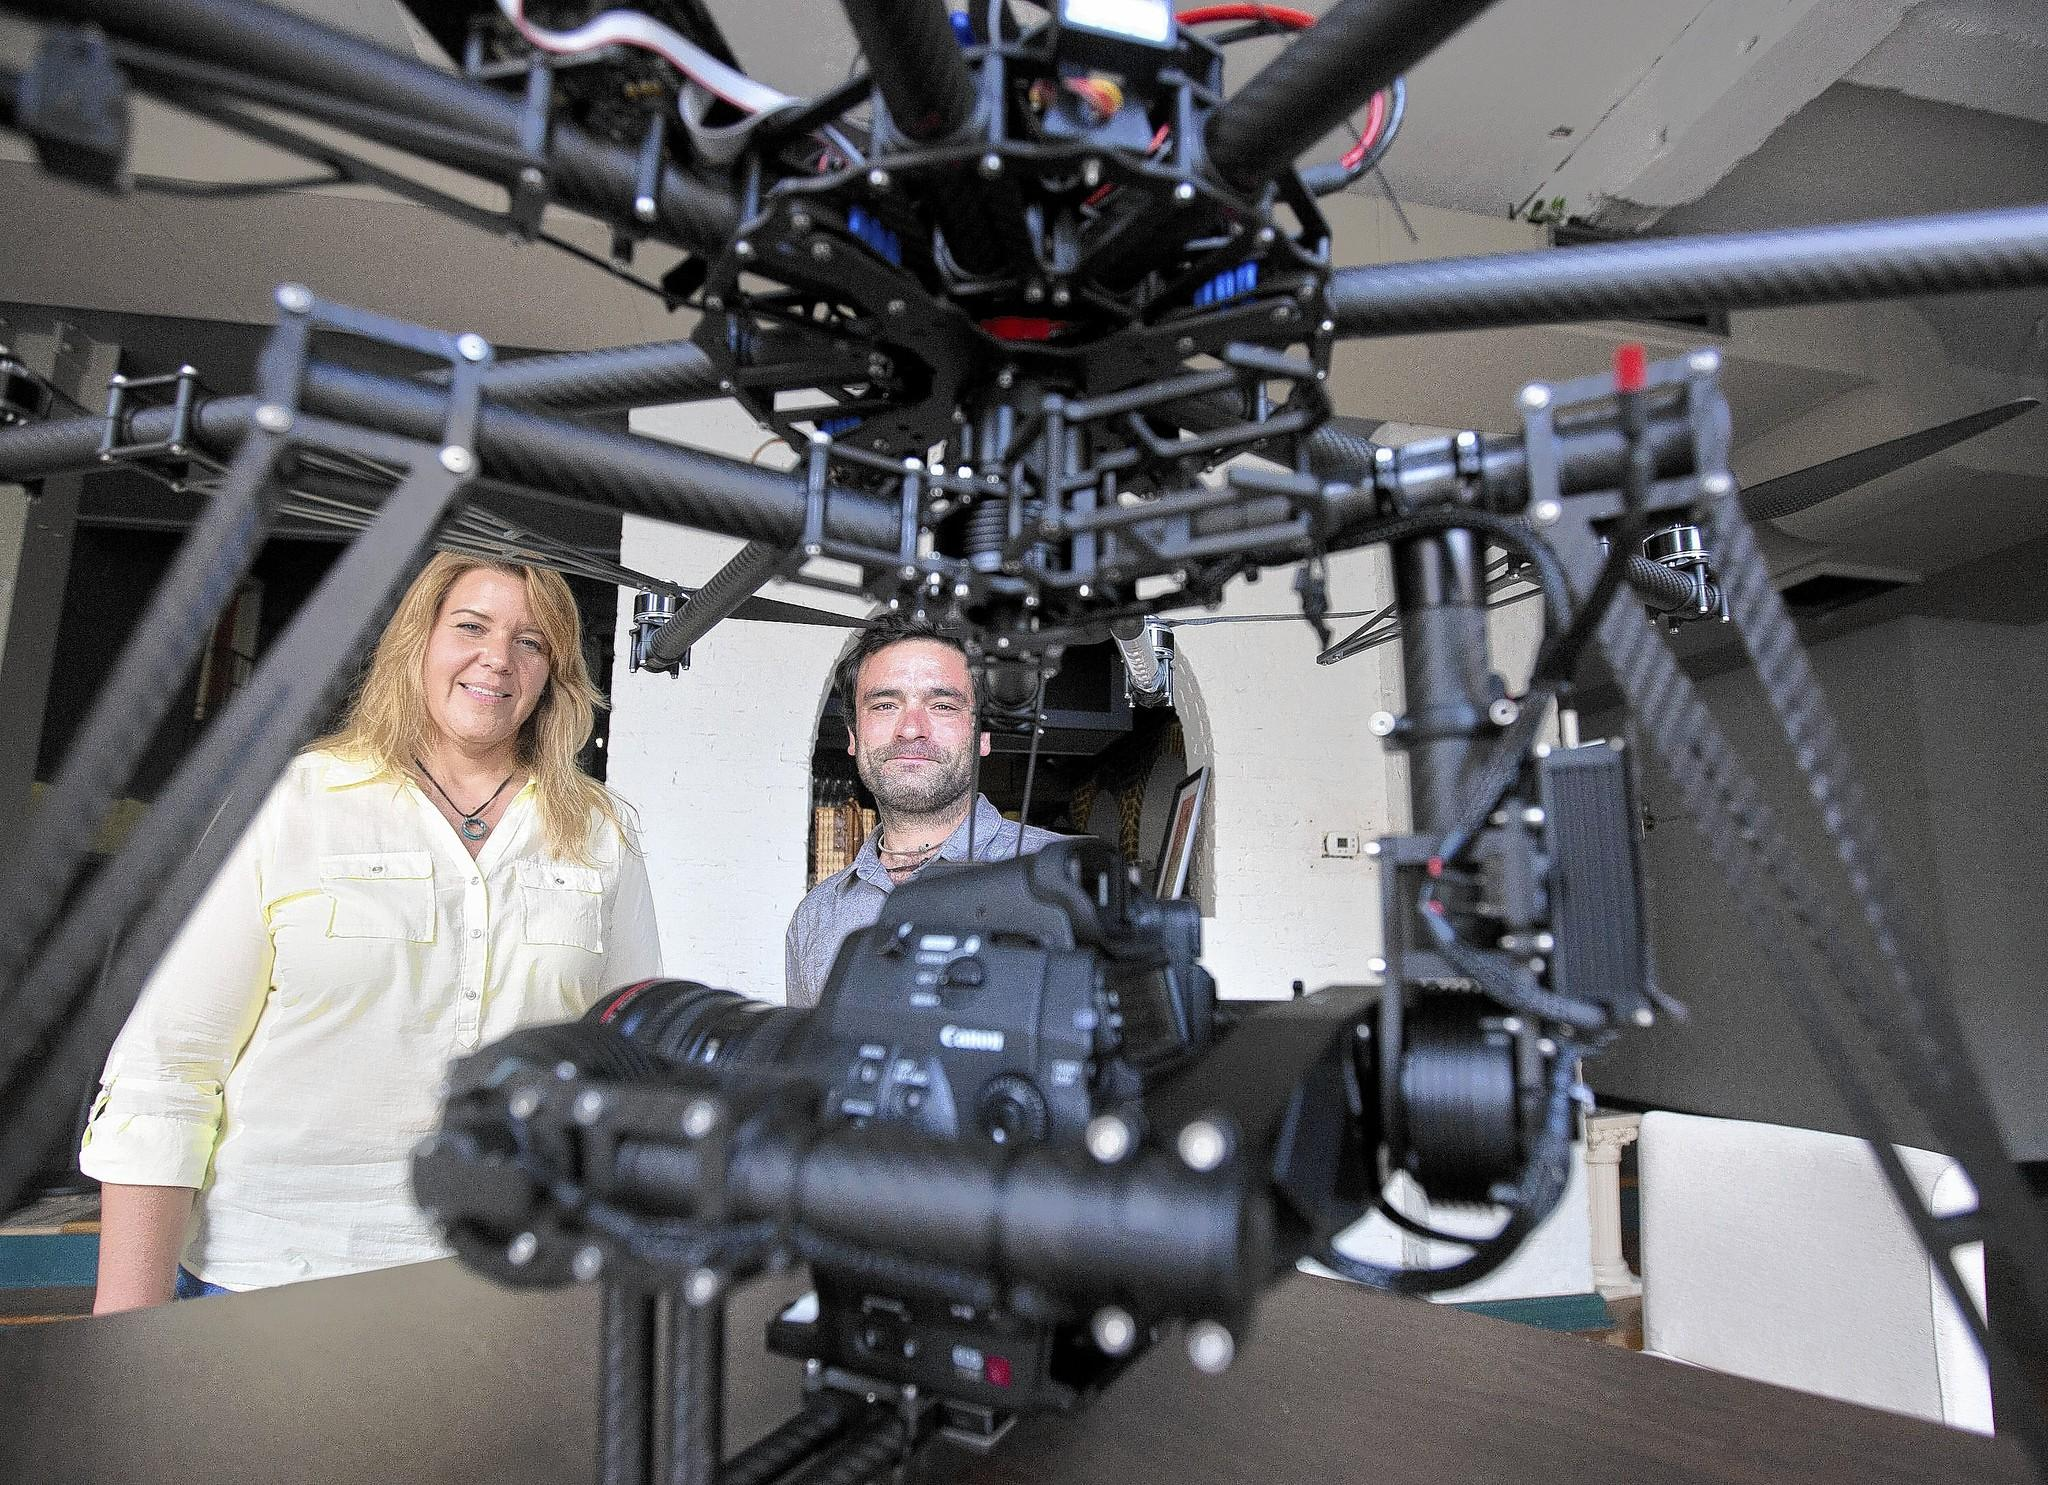 Kathy Martin and Jacin Buchanan of m2 Pictures stand with a remote-controlled octocopter drone that the studio plans to use to film cable TV shows.